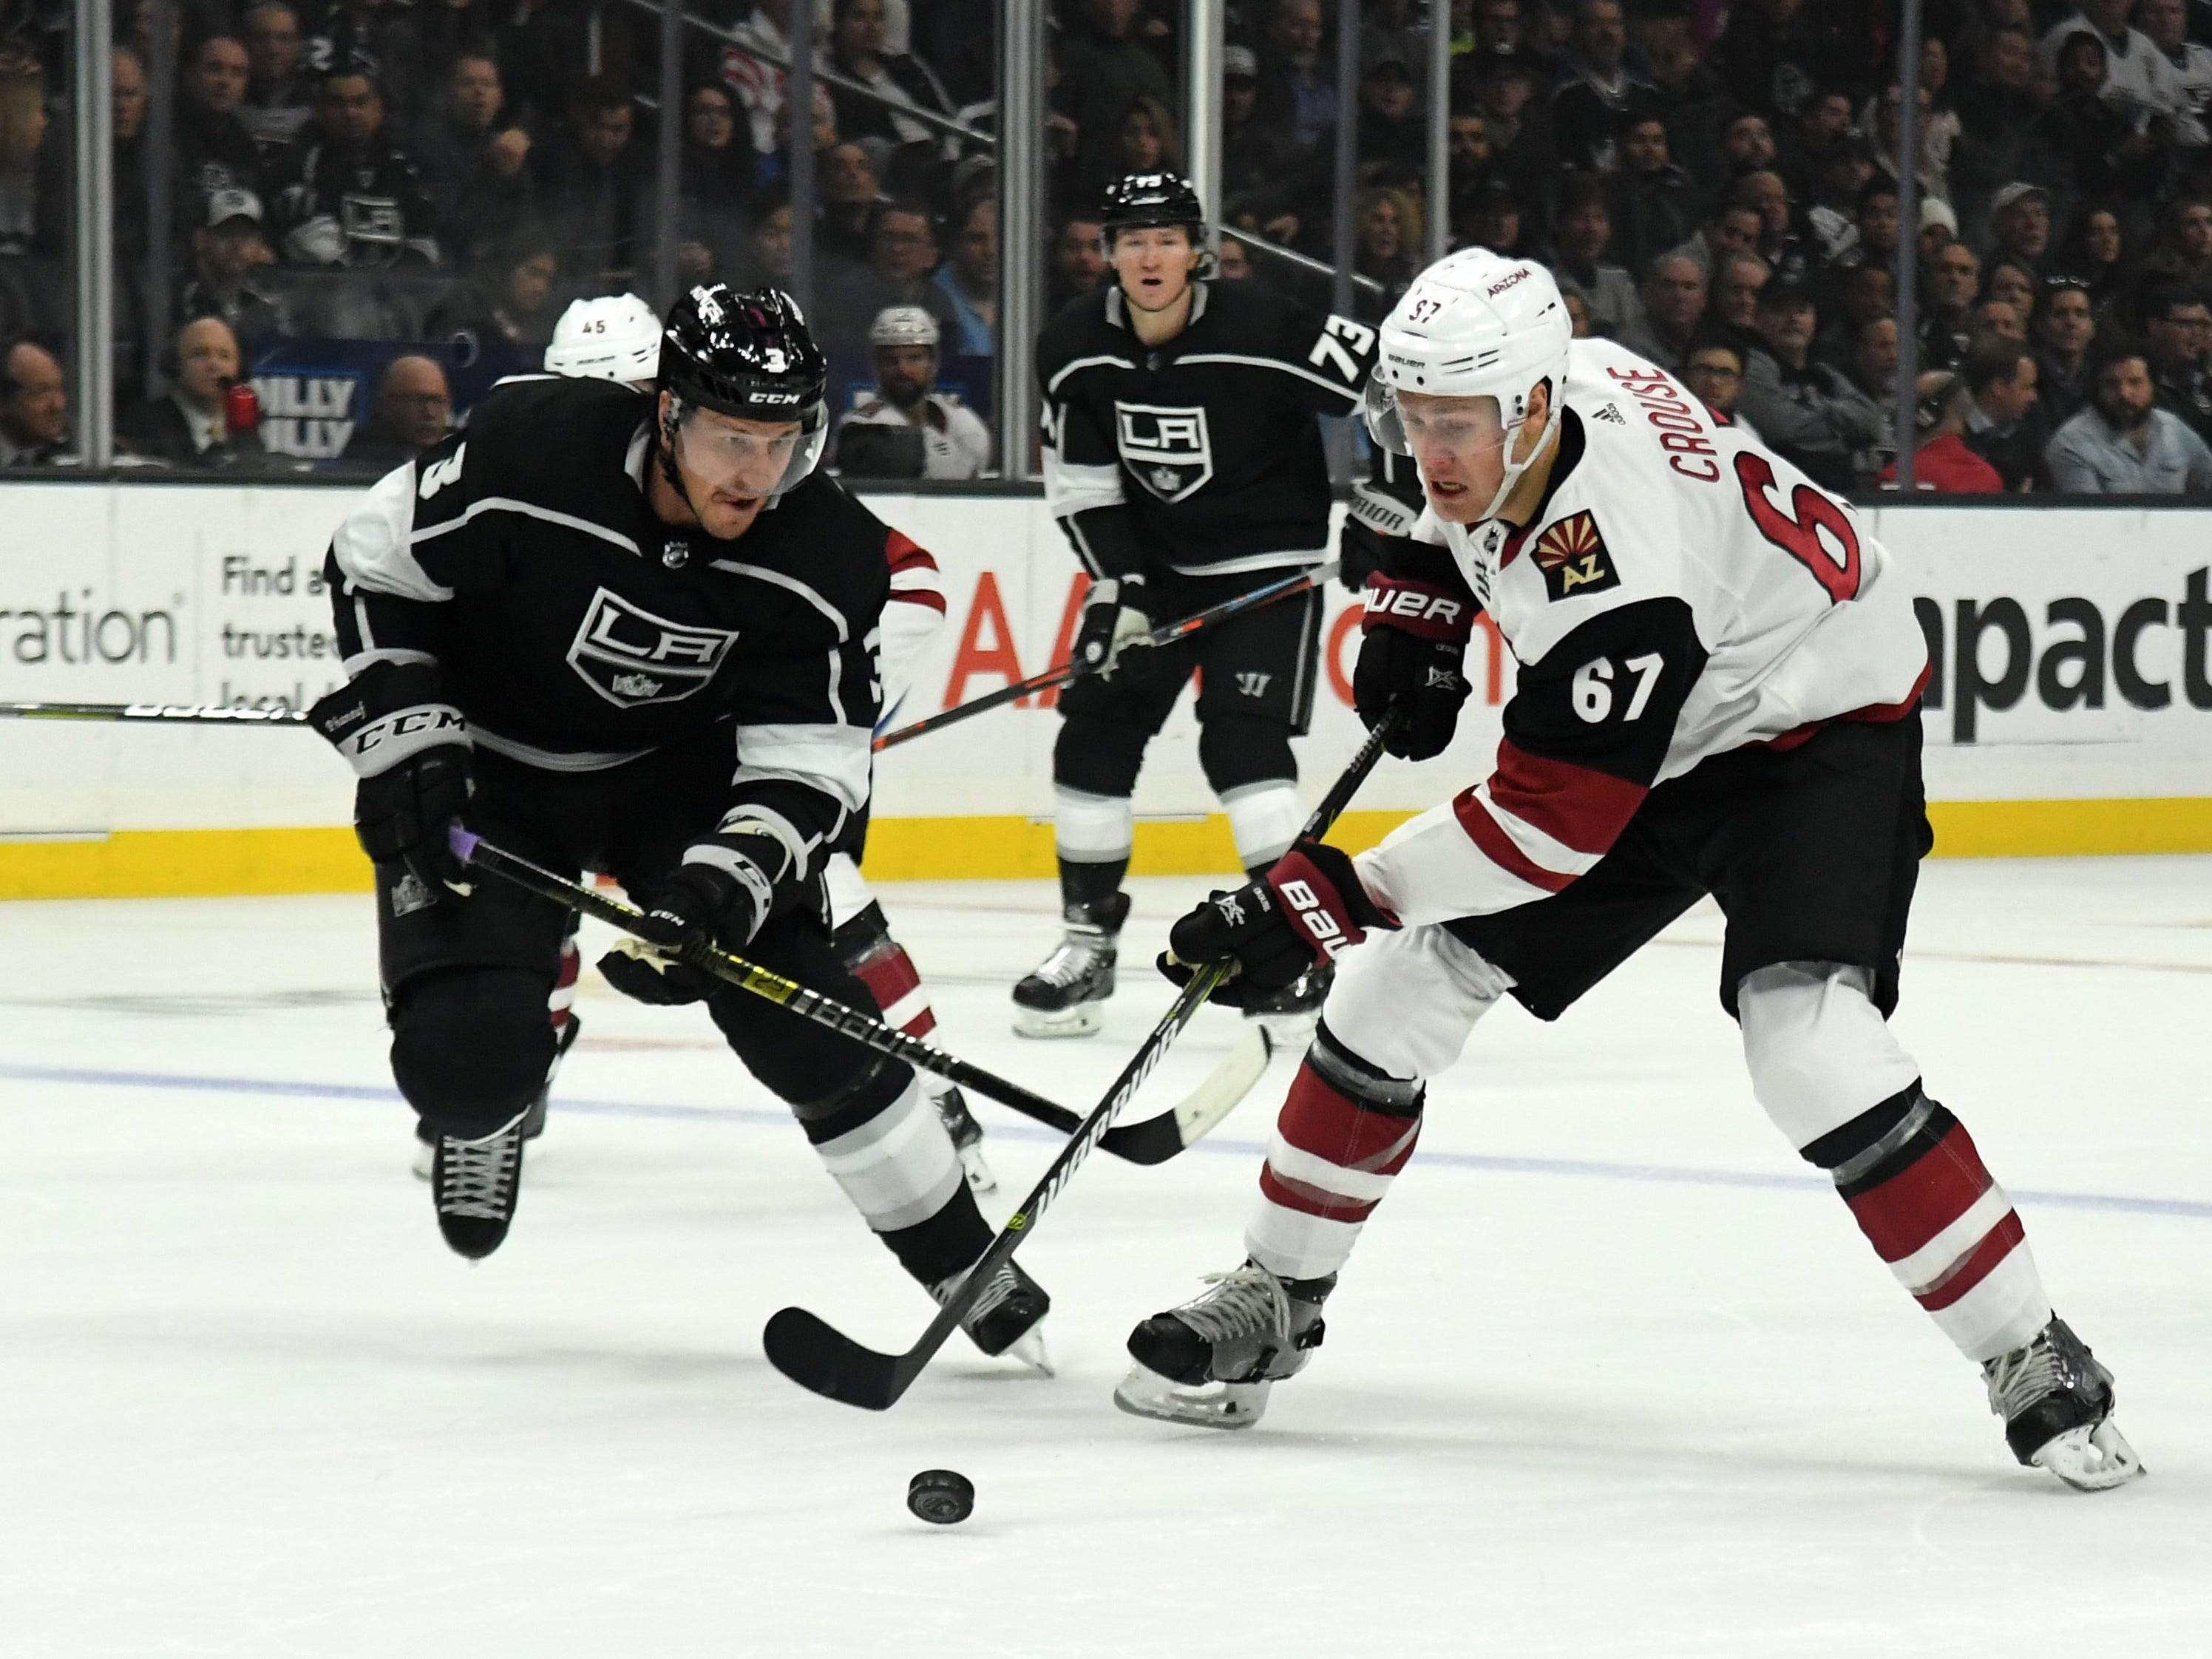 Dec 4, 2018; Los Angeles, CA, USA; Arizona Coyotes left wing Lawson Crouse (67) and Los Angeles Kings defenseman Dion Phaneuf (3) battle for the puck in the first period at Staples Center. Mandatory Credit: Kirby Lee-USA TODAY Sports